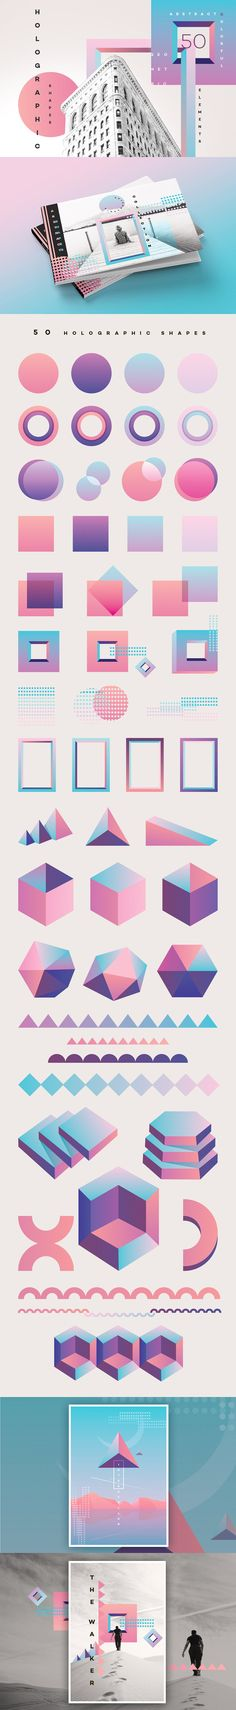 50 Holographic Shapes for posters, invitations, flyers, business cards and more